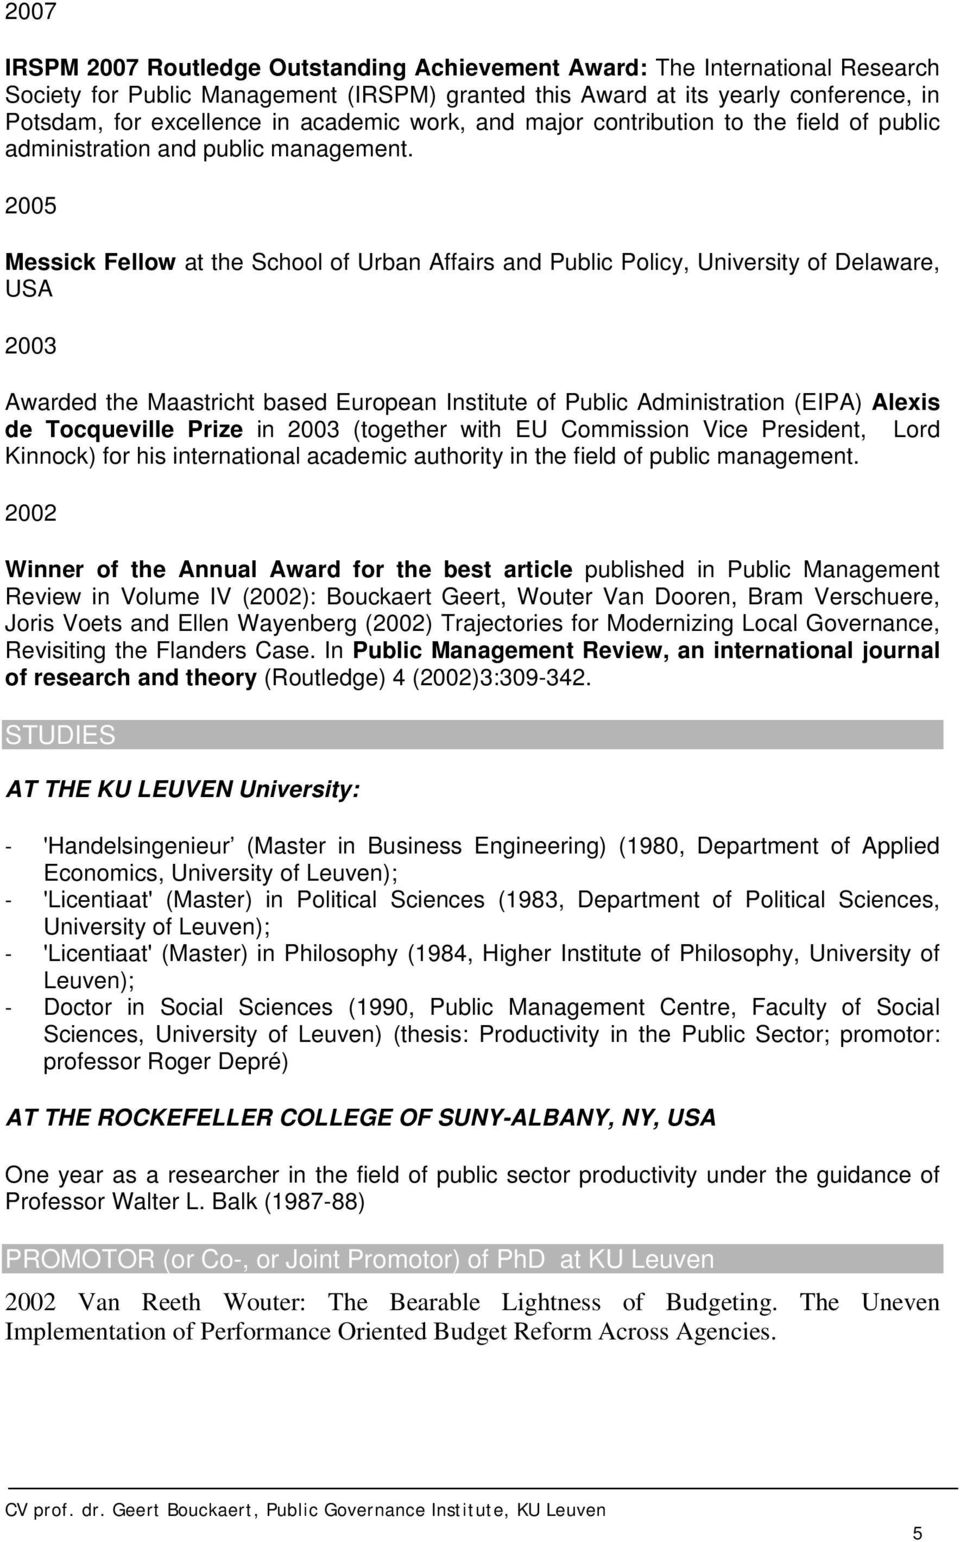 2005 Messick Fellow at the School of Urban Affairs and Public Policy, University of Delaware, USA 2003 Awarded the Maastricht based European Institute of Public Administration (EIPA) Alexis de